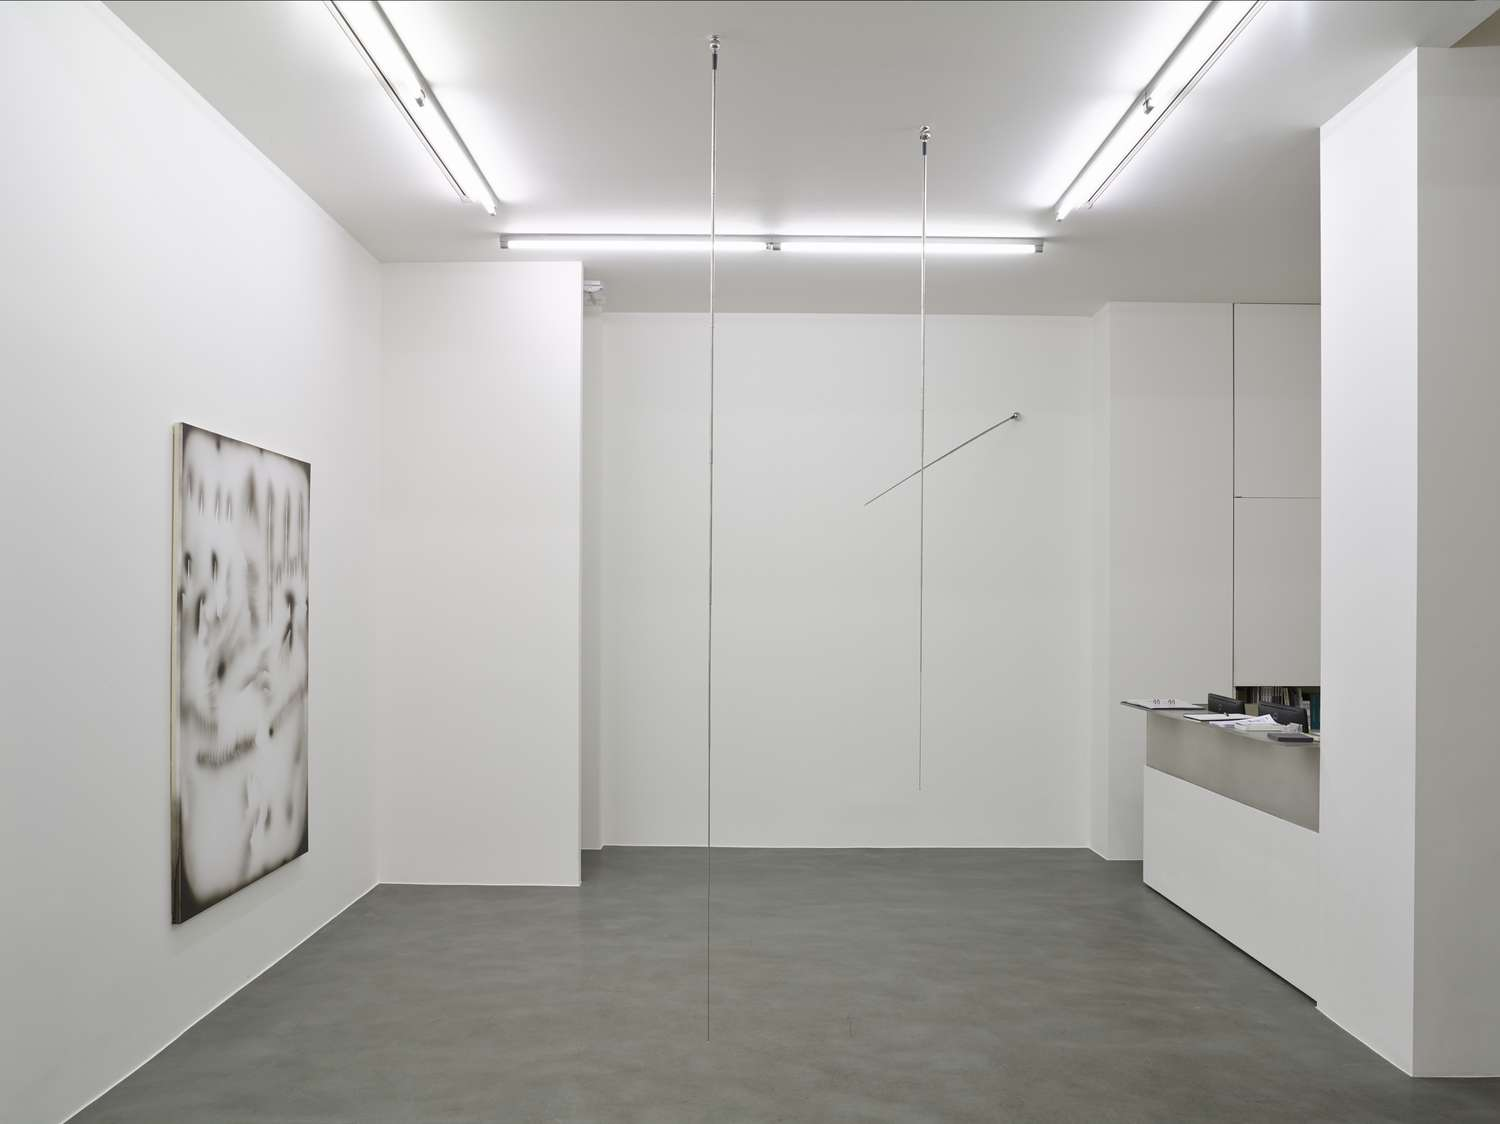 JZ_2016_SOME SCREEN MODS_Simon Lee Gallery, London_Installation View_P (6)